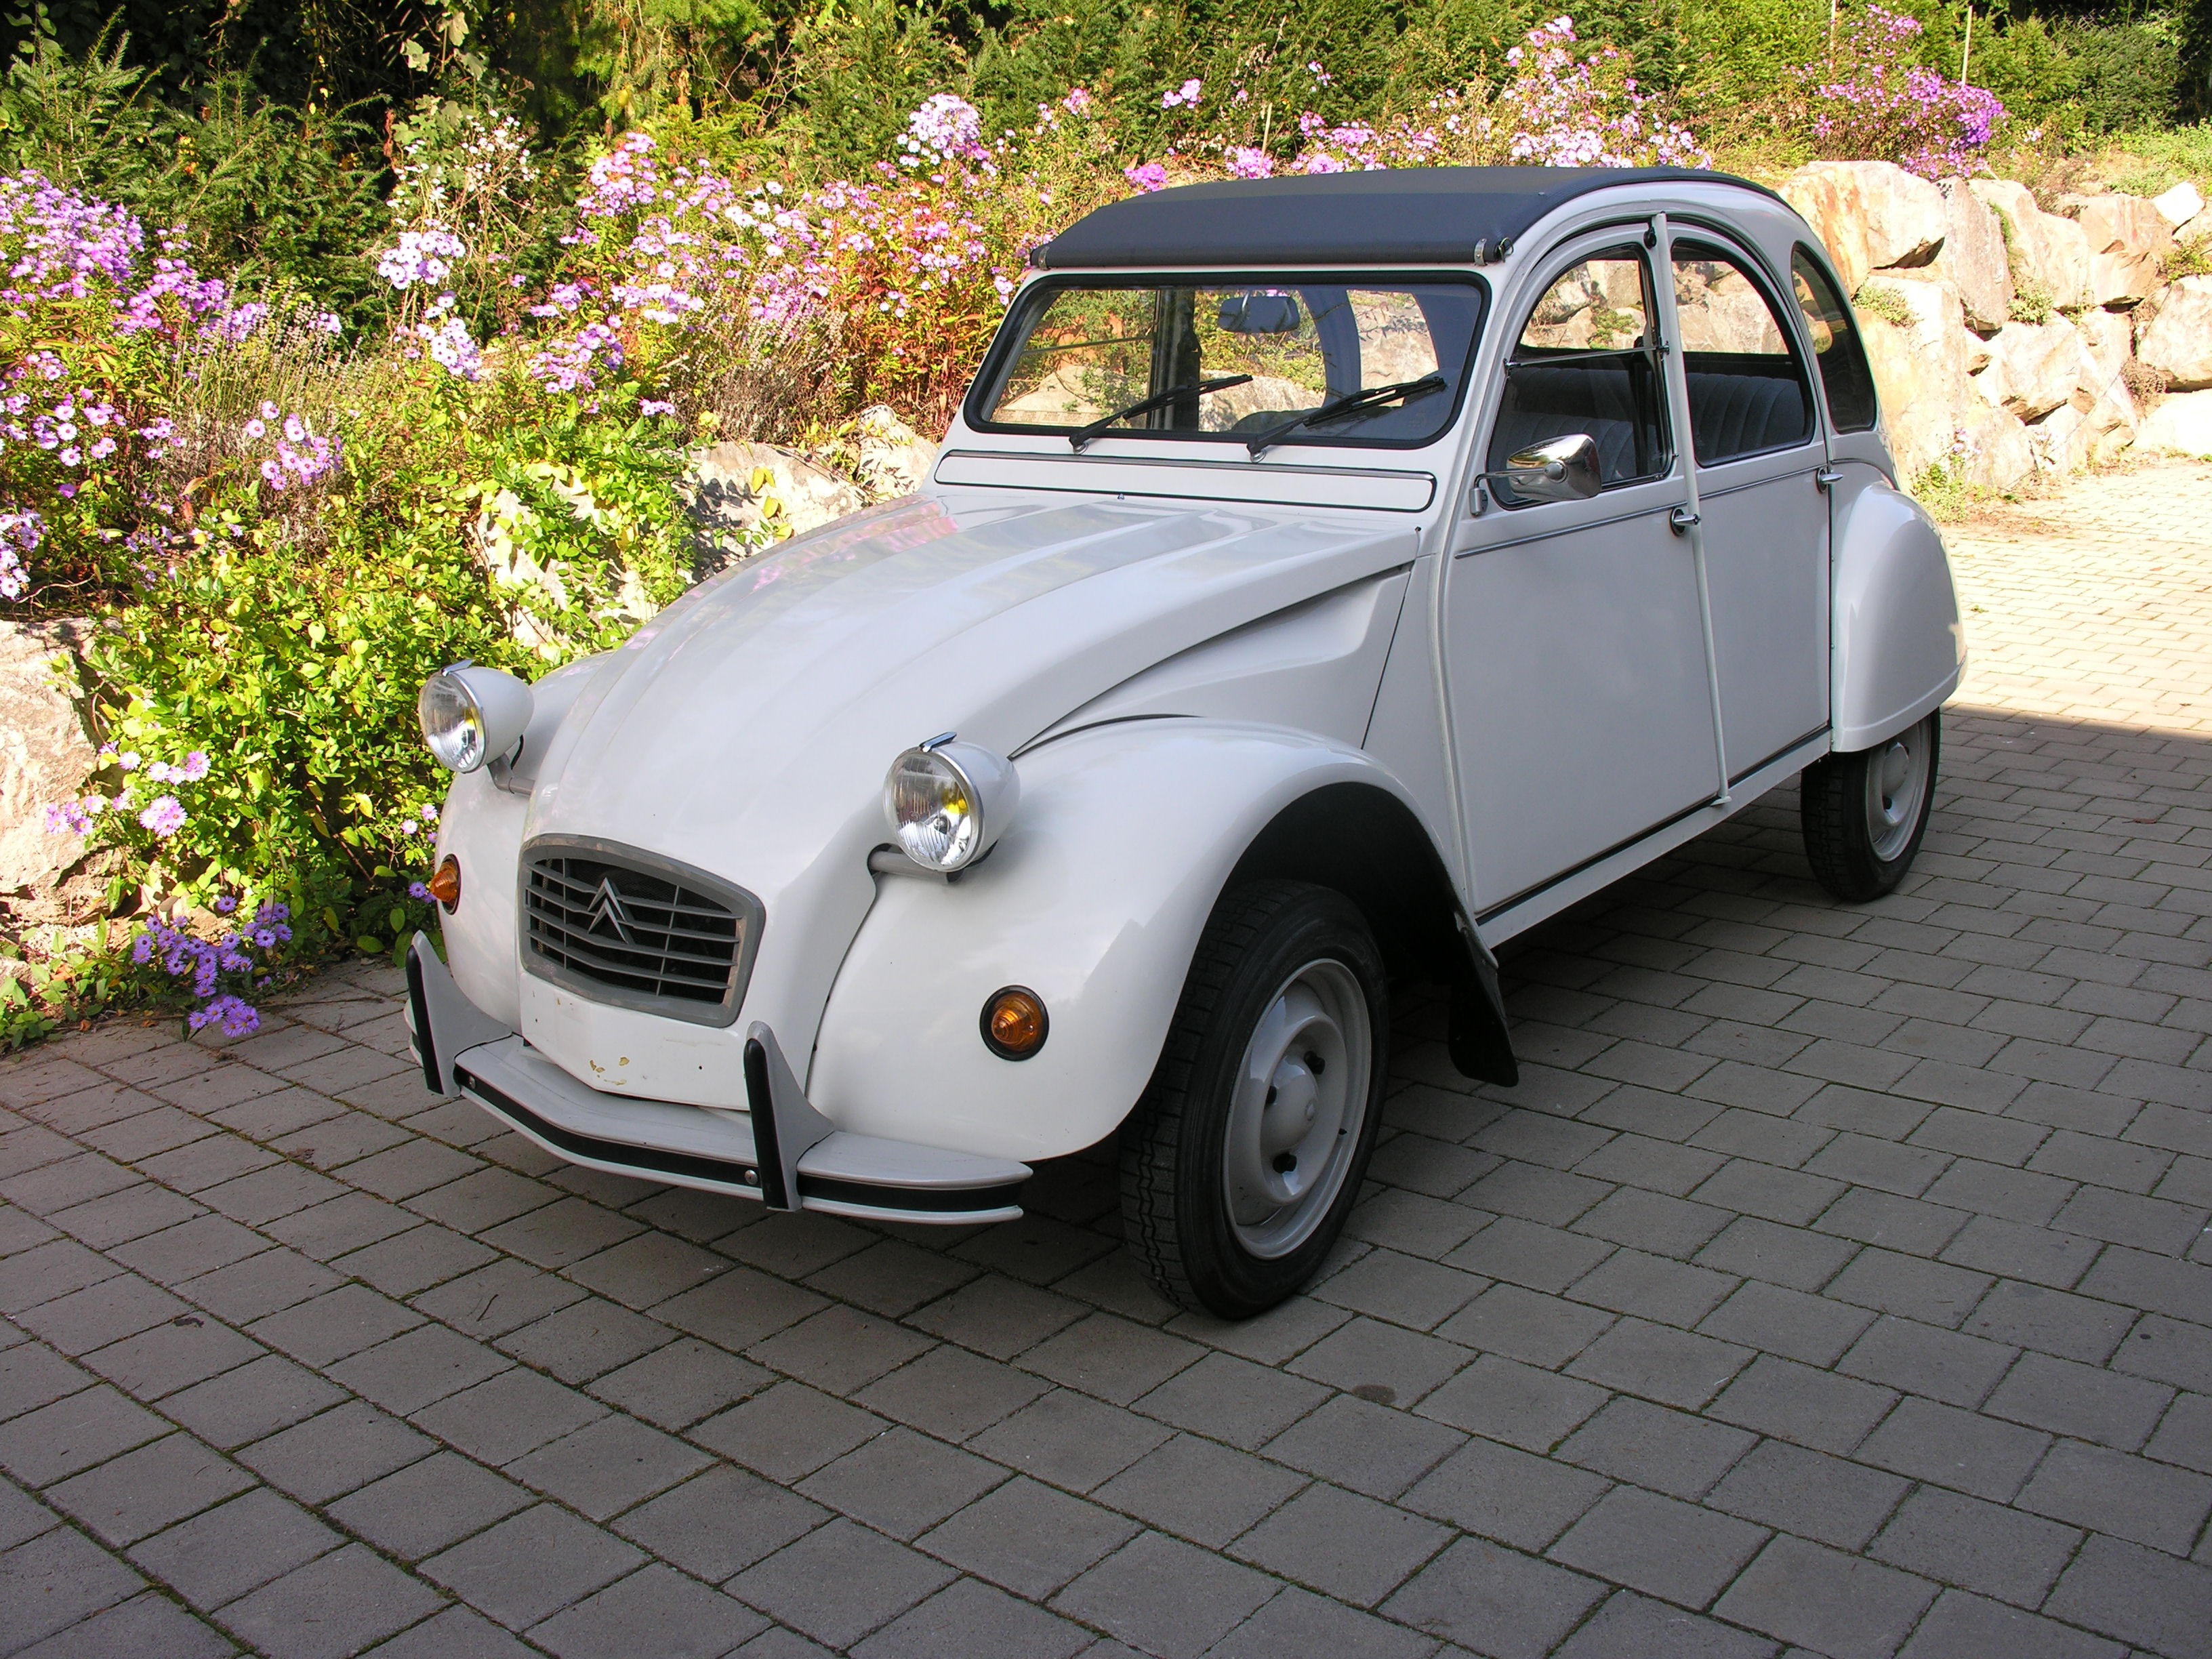 pi ces d tach es 2cv et mehari derni re 2cv neuve ami de la 2cv. Black Bedroom Furniture Sets. Home Design Ideas